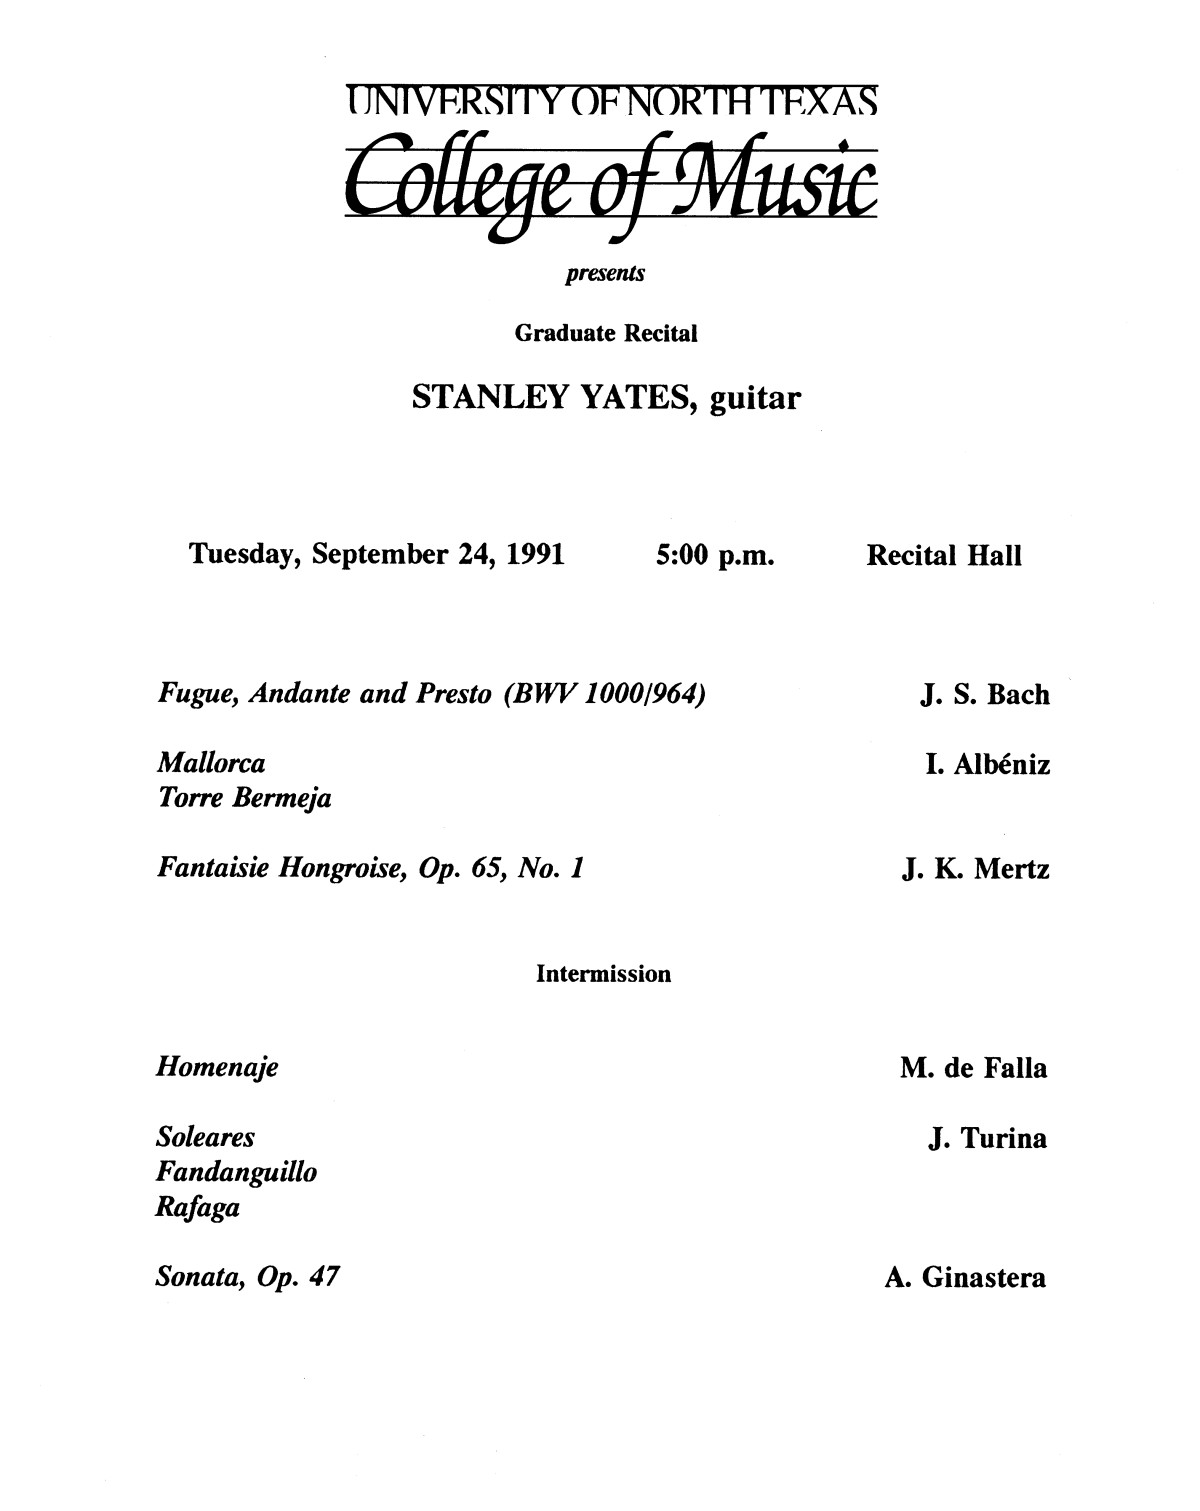 College of Music program book 1991-1992 Student Performances Vol. 2                                                                                                      [Sequence #]: 12 of 310